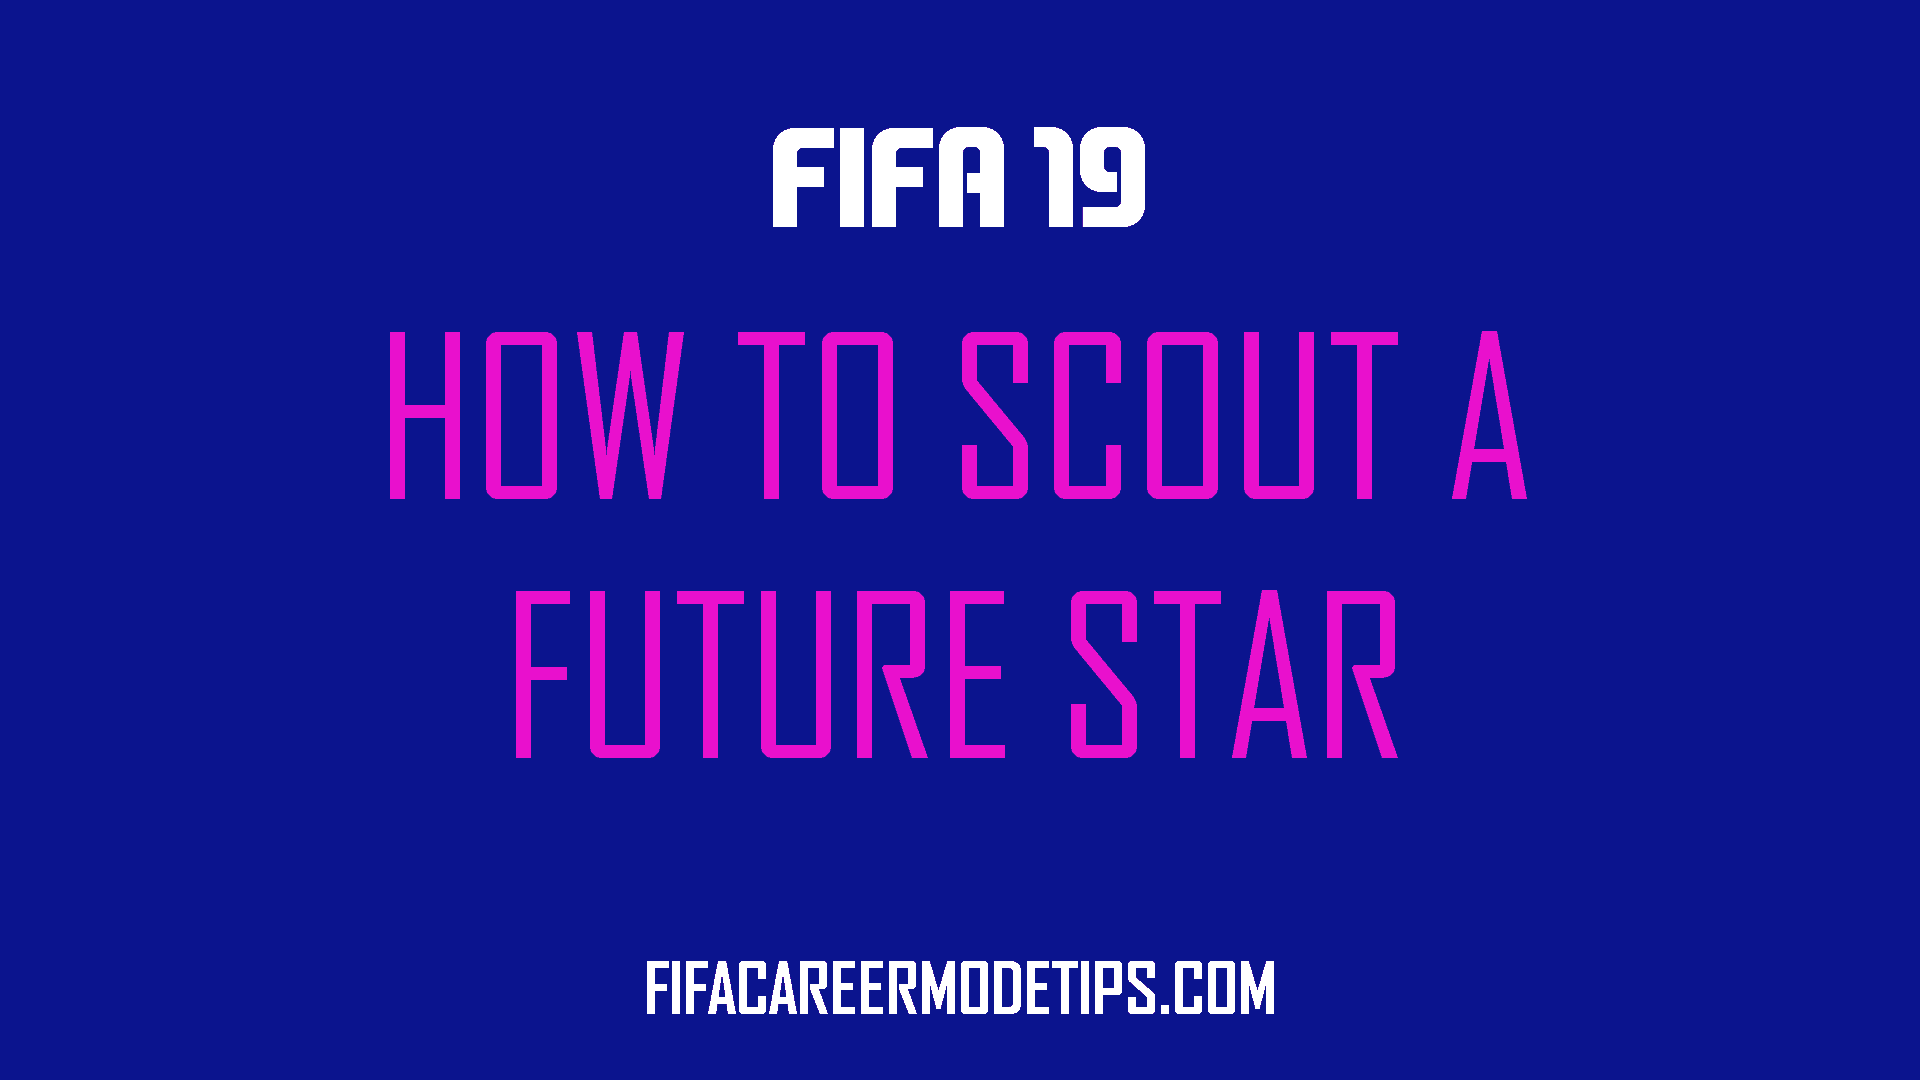 Scout a Future Star in FIFA 19 - A How-to Guide - FIFA Career Mode Tips